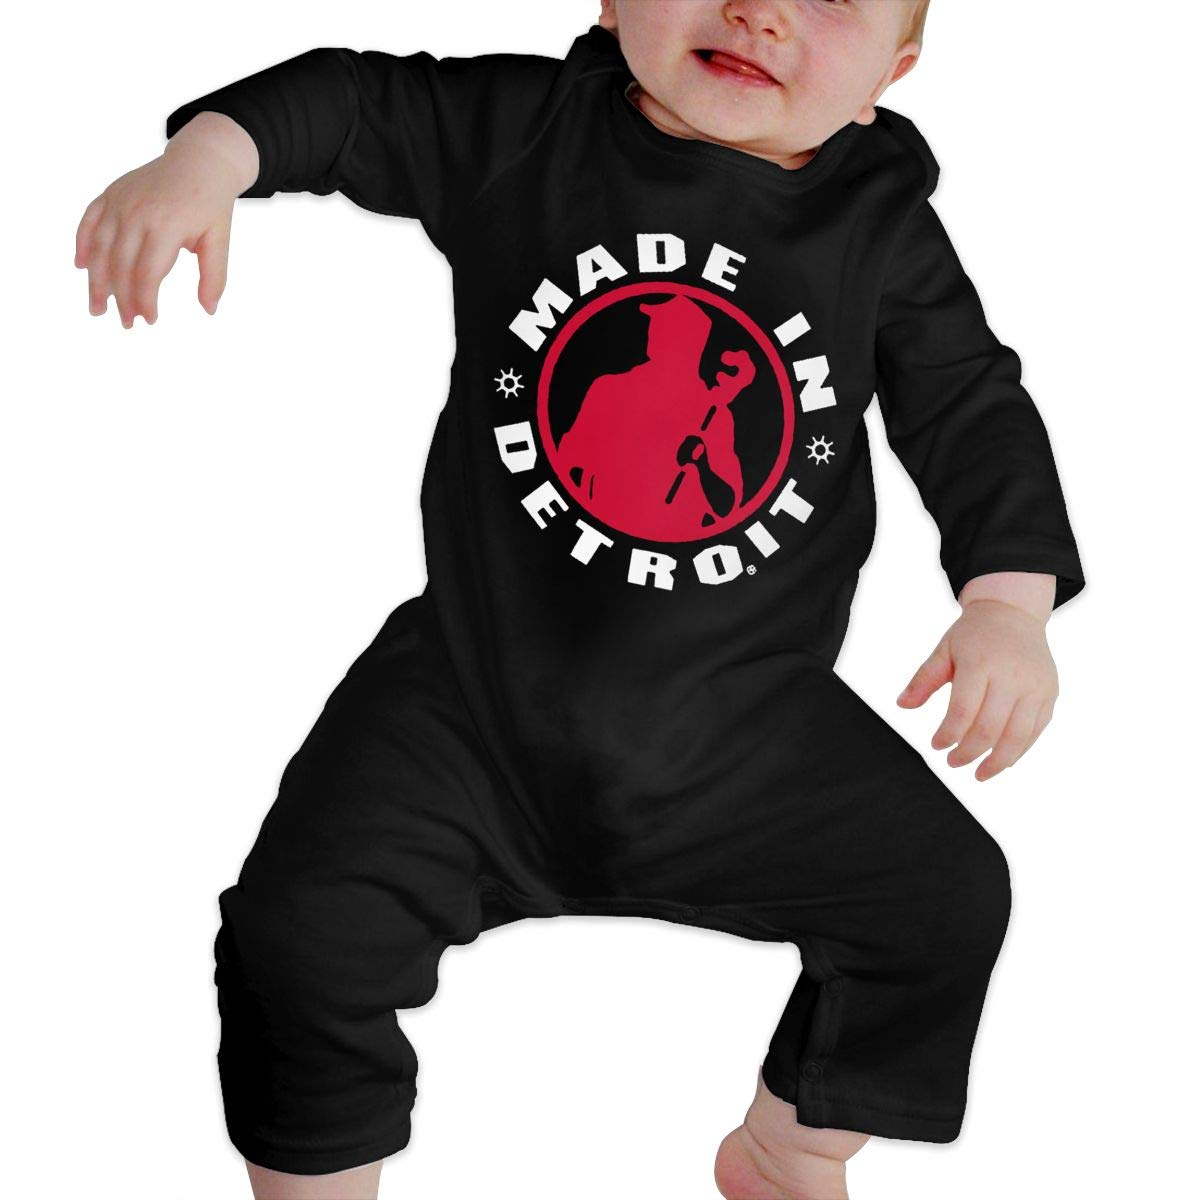 Made in Detroit Newborn Baby Boy Girl Romper Jumpsuit Long Sleeve Bodysuit Overalls Outfits Clothes